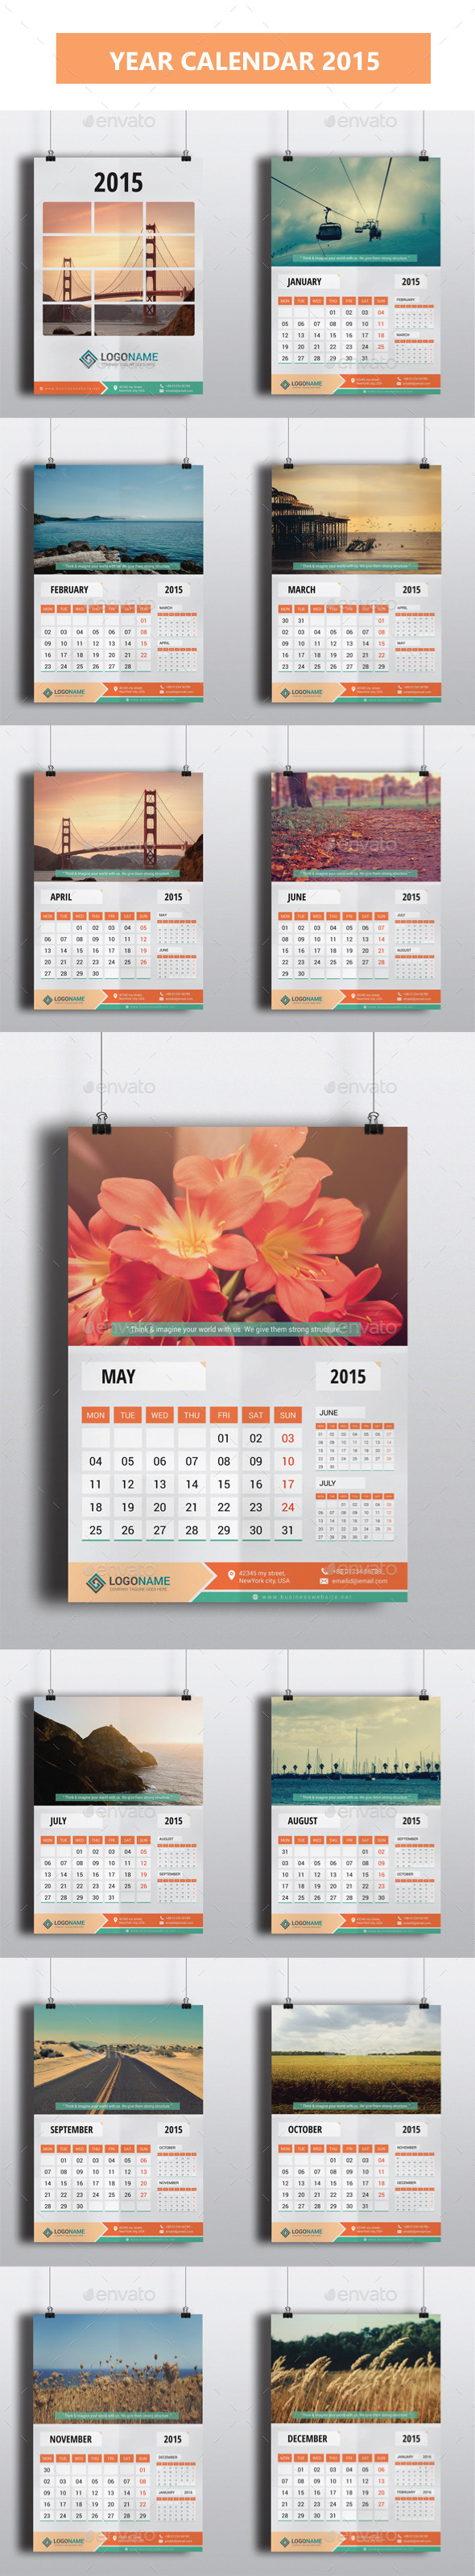 GraphicRiver Year Calendar 2015 9433219